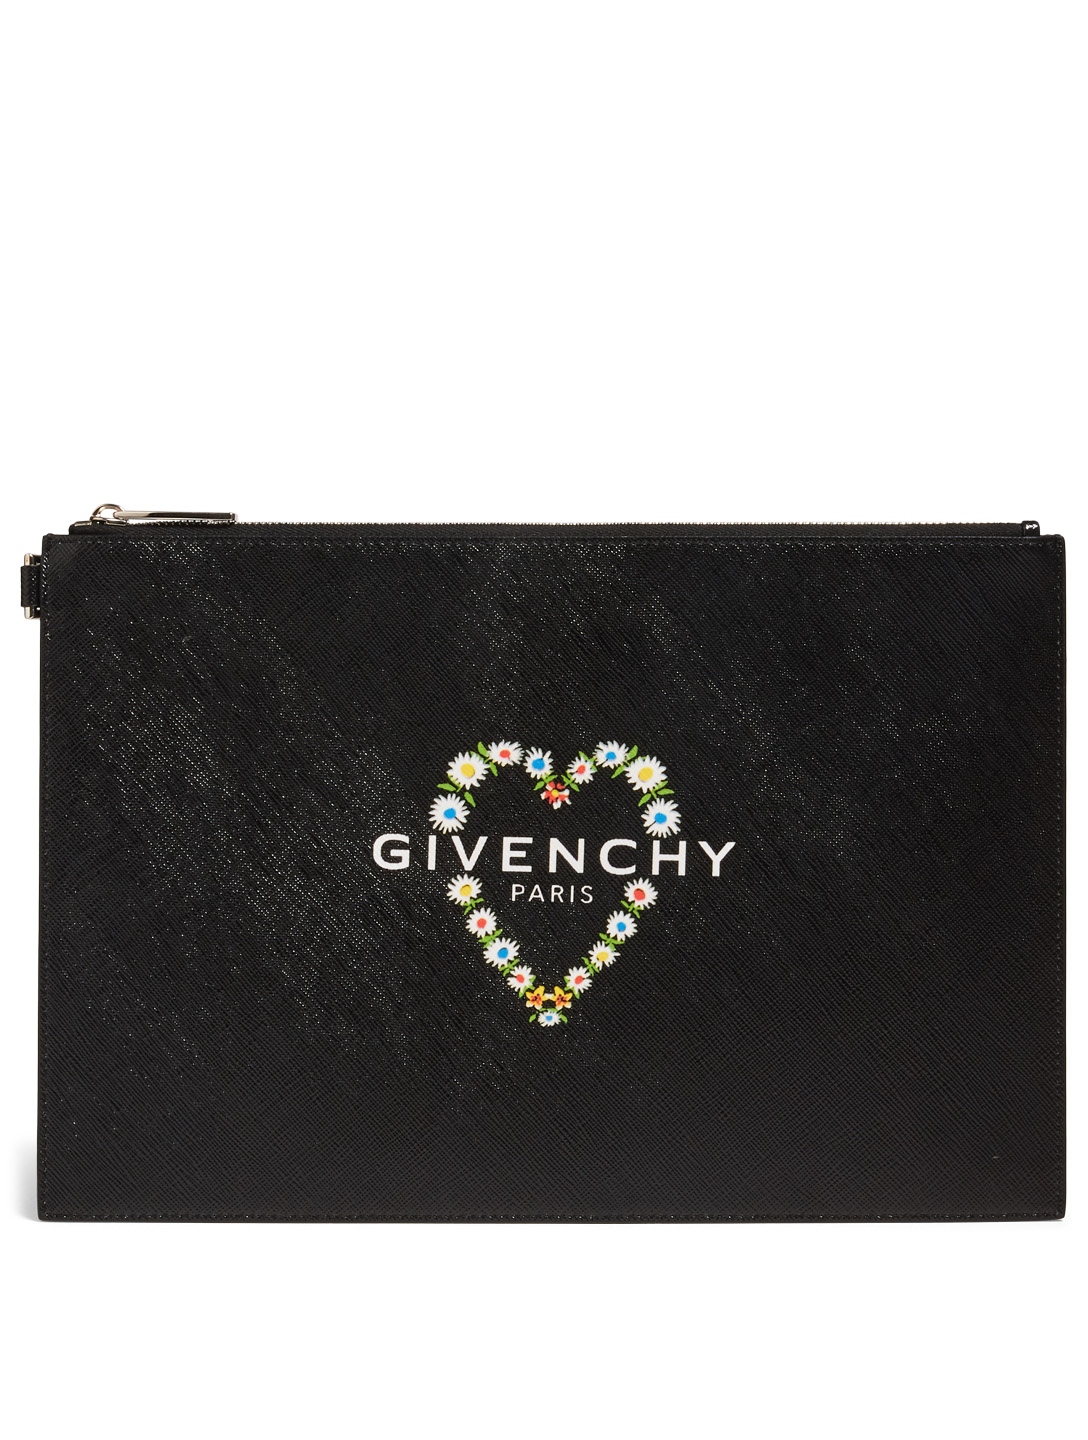 GIVENCHY Floral Heart Coated Canvas Pouch Women's Black